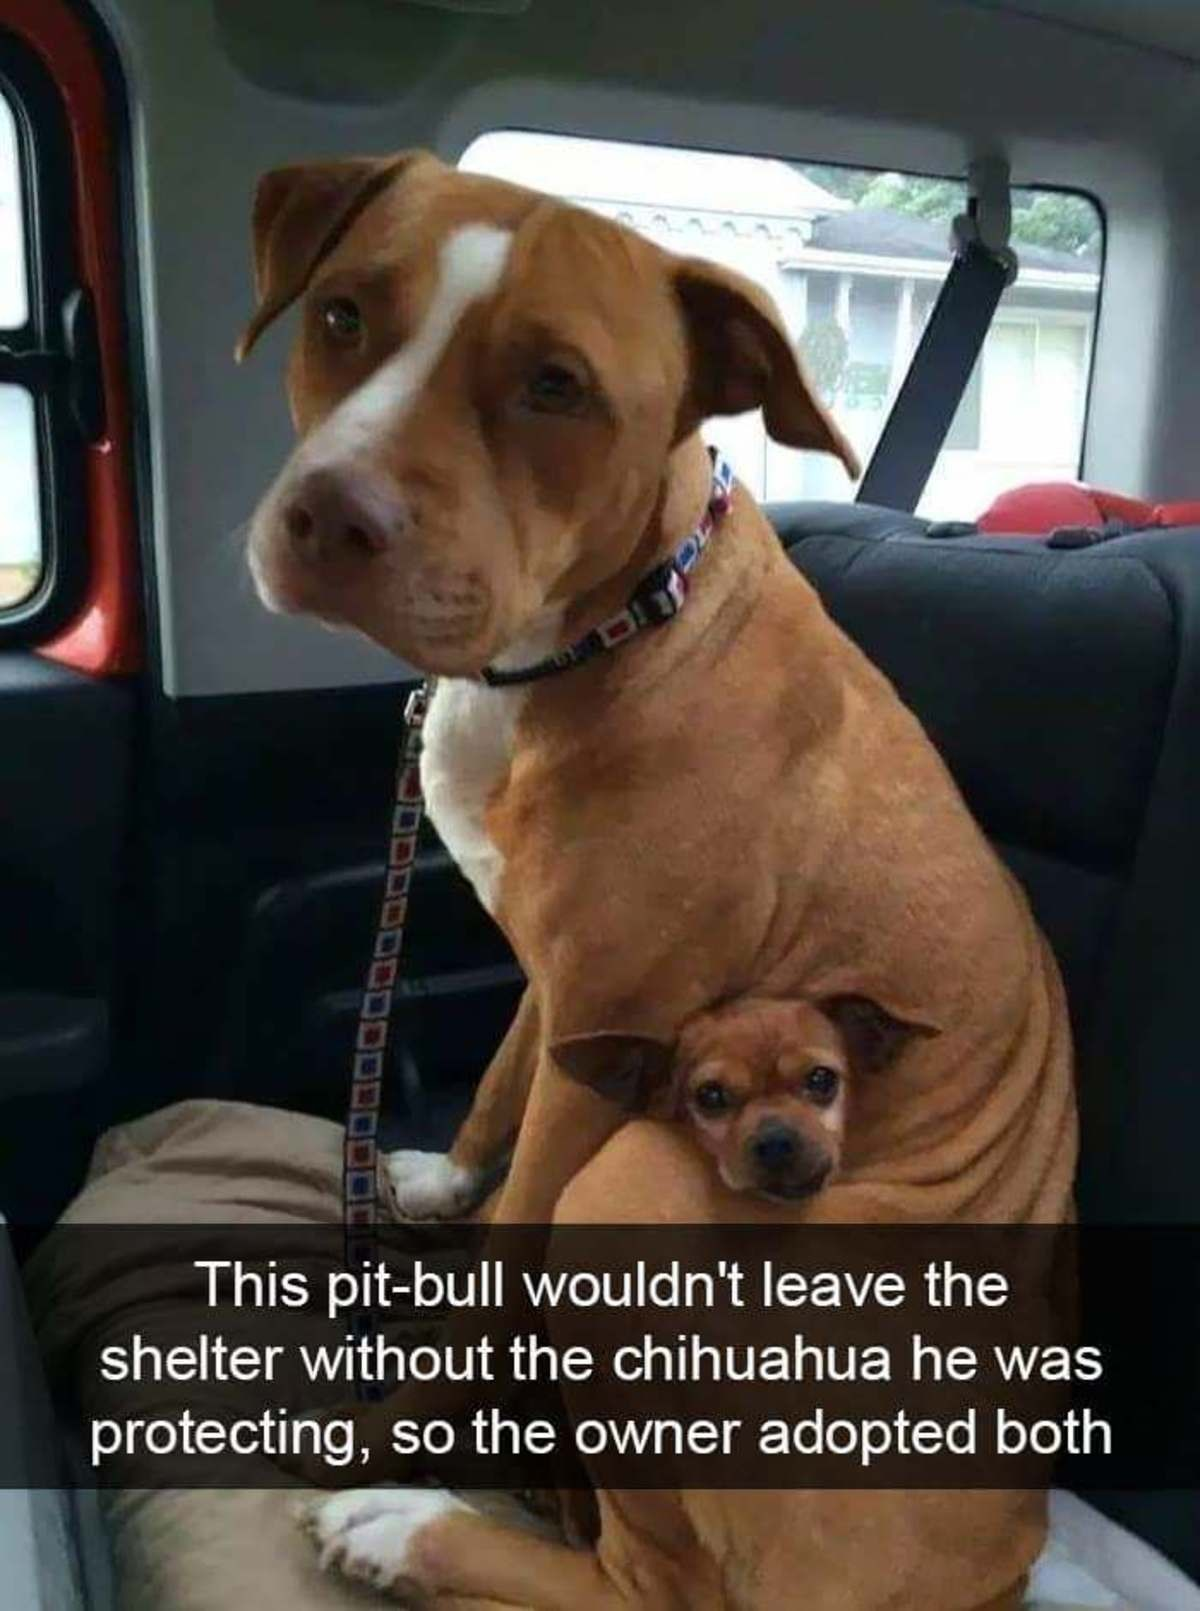 Doggo Dump. . This pittbull wouldn' t leave the) shelter without the chihuahua he was protecting, so the owner adopted bothl Inutai' v ' Before arid after I Sig